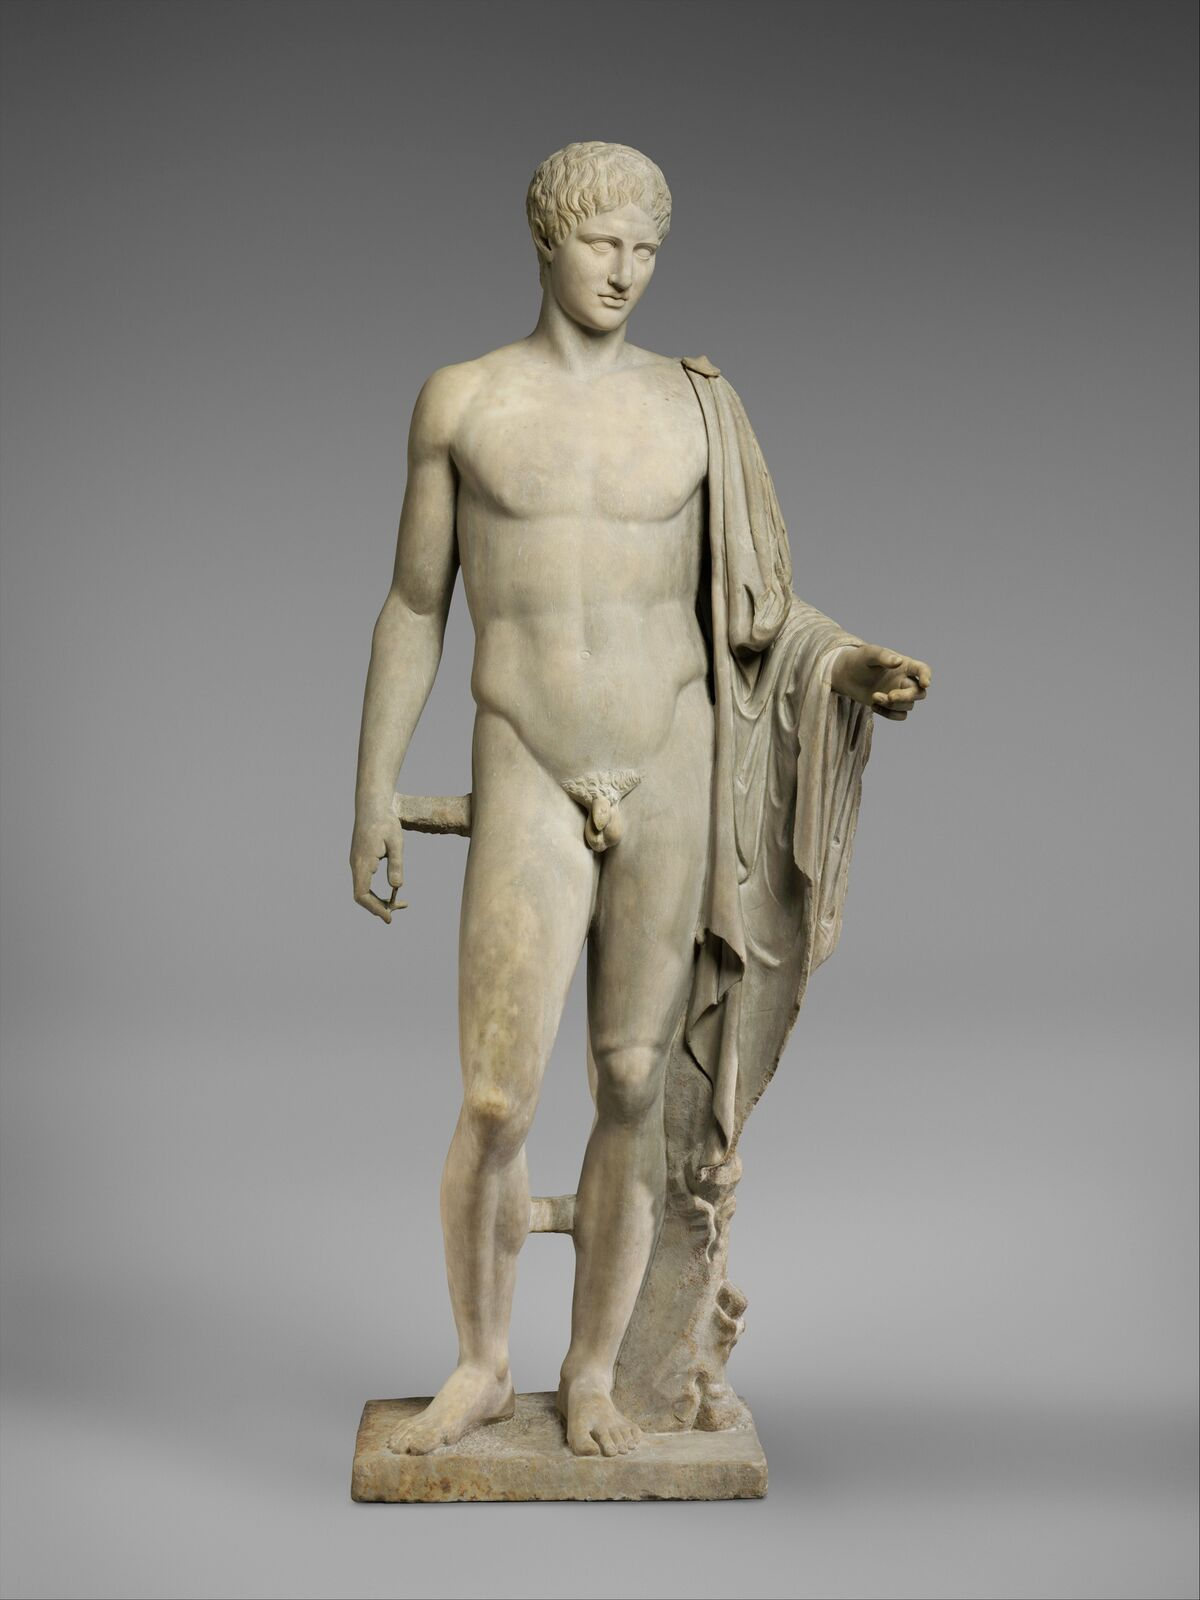 Copy of work attributed to Polykleitos, 1st or 2nd century A.D., via the Metropolitan Museum of Art.